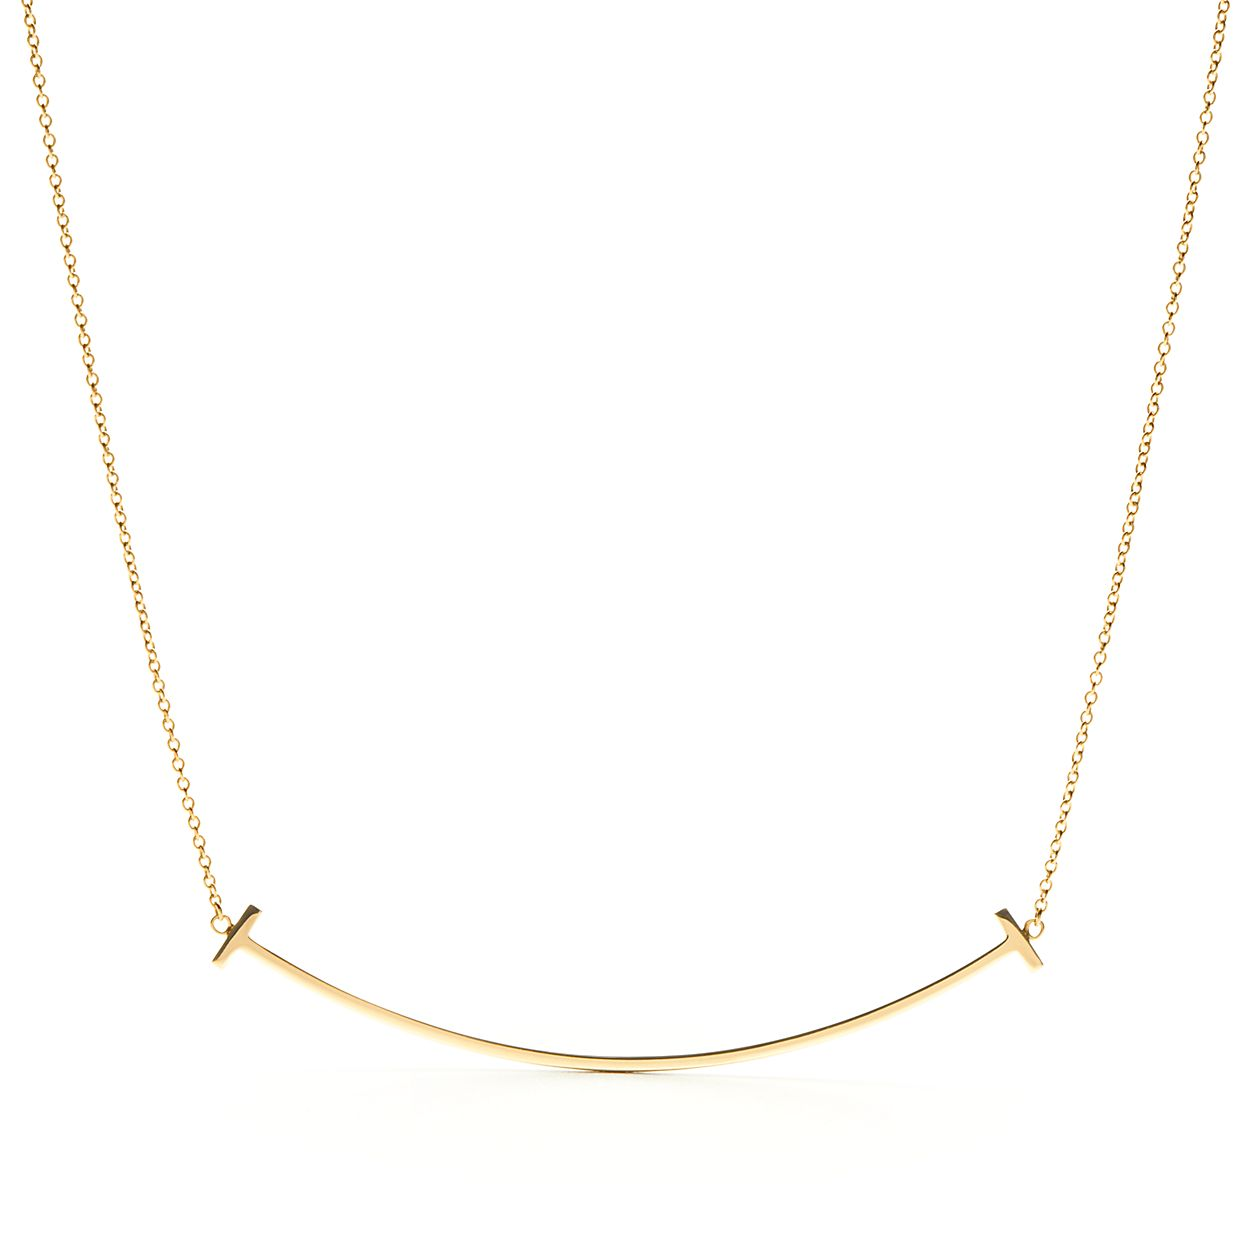 necklace jewelry plumb michele gold mercaldo bob diamond